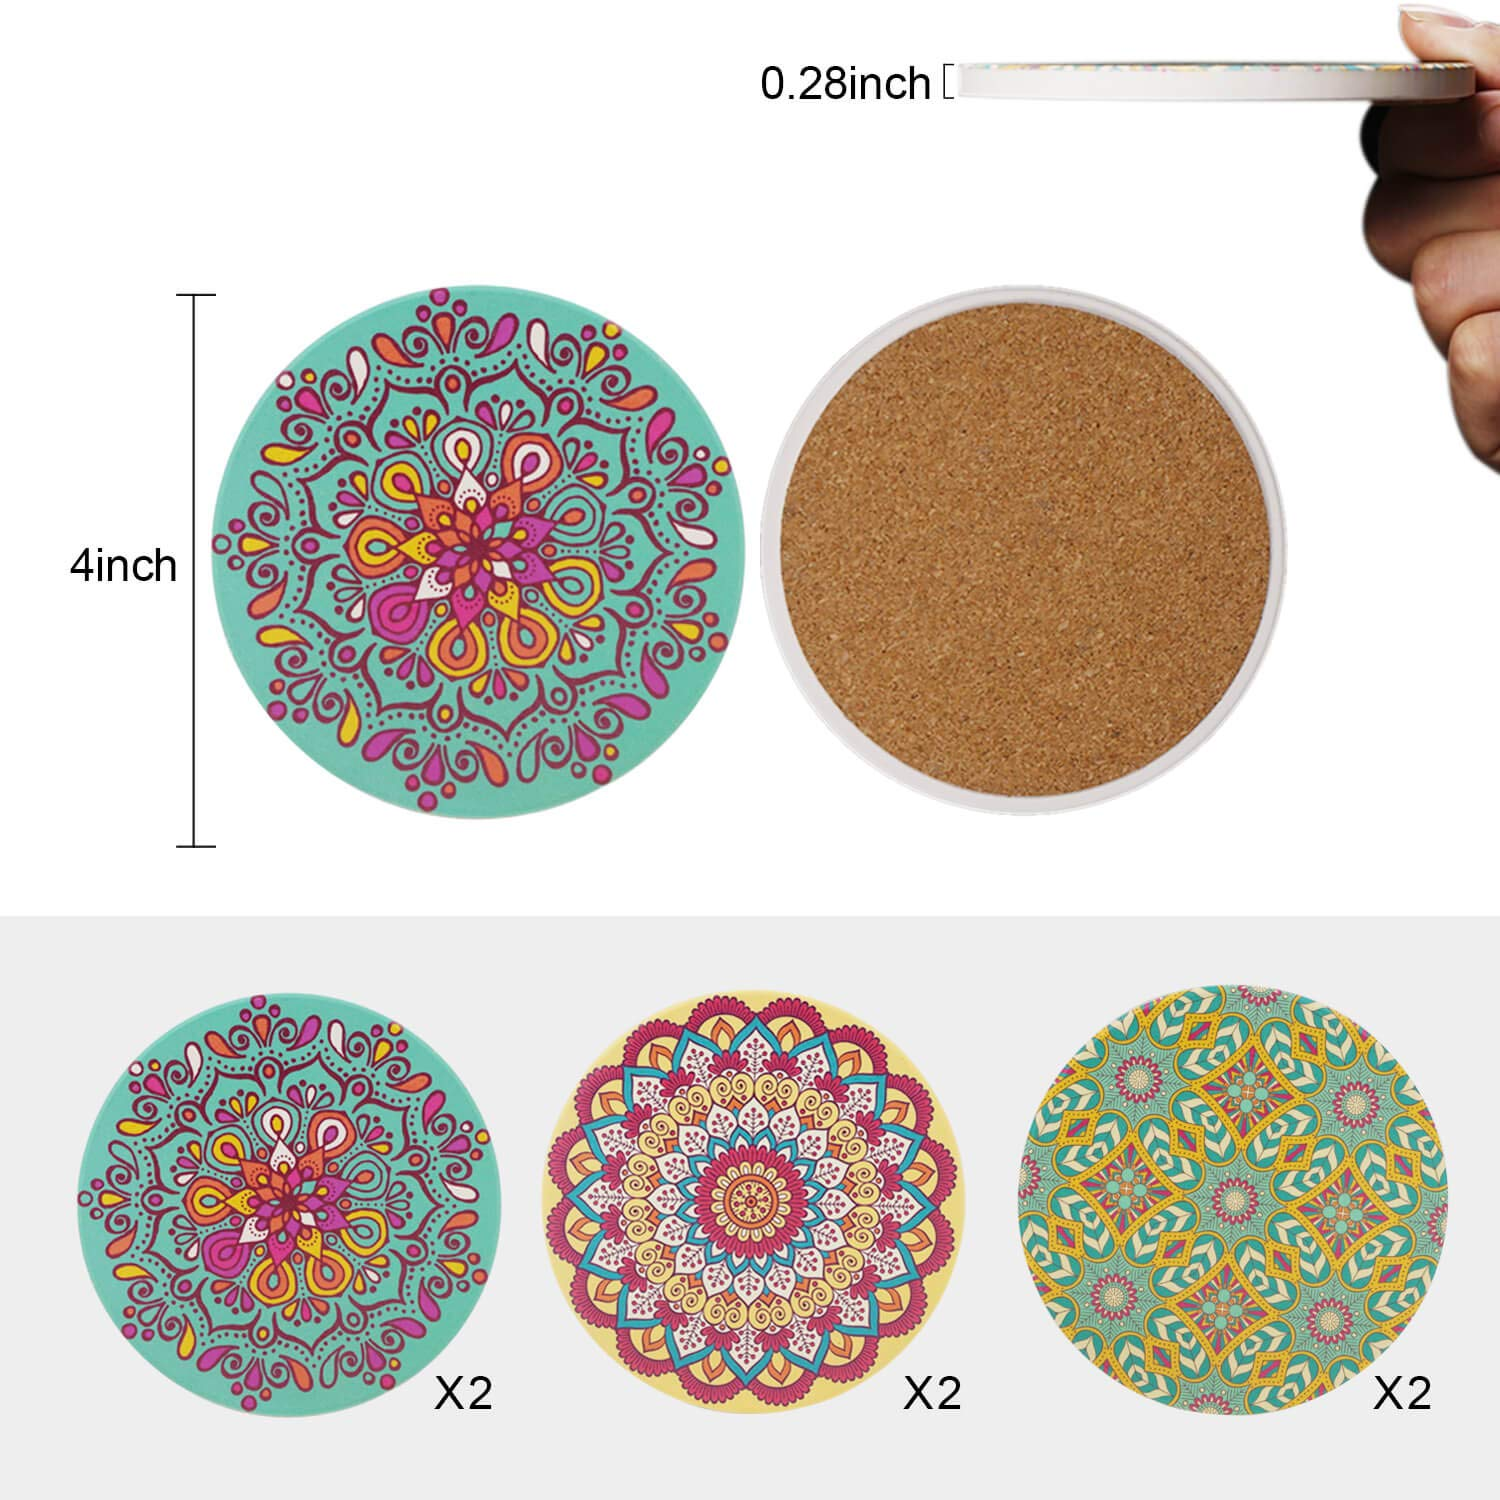 heat resistant,Unique Design Patterns,Mandala Style Coffipa Absorbent Ceramic Stone Coasters Set of 6 with Cork Base for Drinks Spill